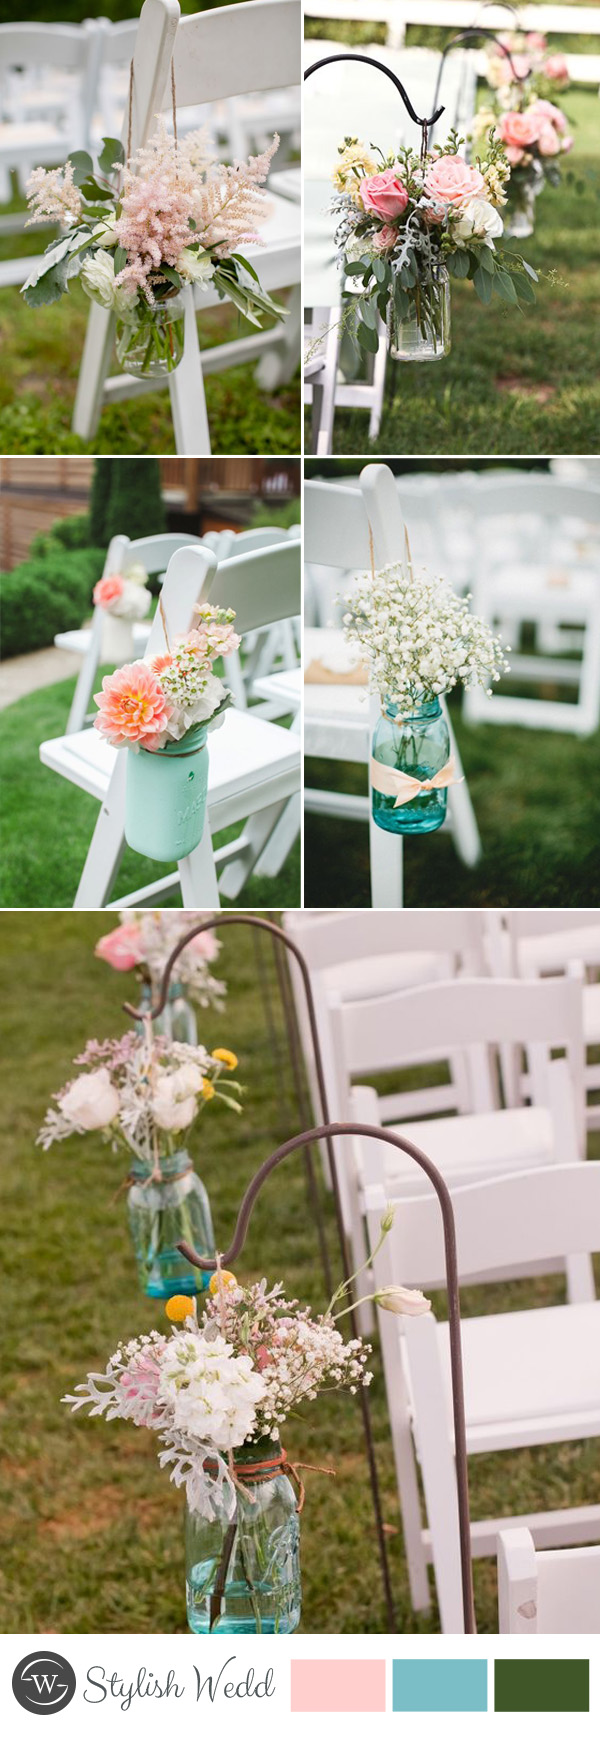 wedding chairs decoration 50 great ways to decorate your weddding chair stylish 8953